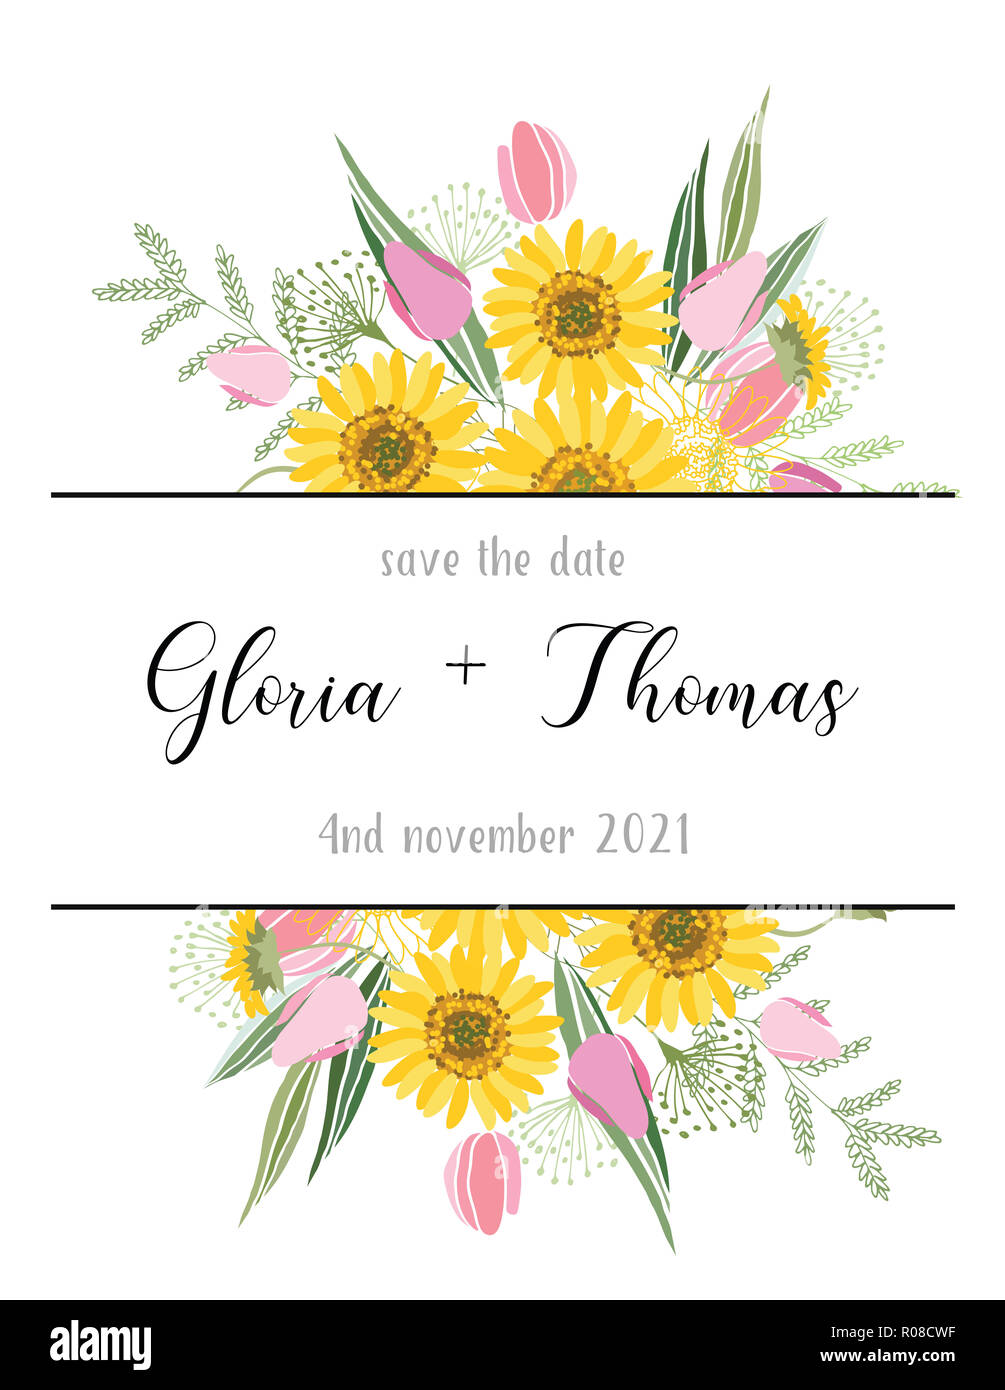 Greeting card for the wedding day with a bouquet of flowers. Flower composition to a celebratory event. illustration - Stock Image